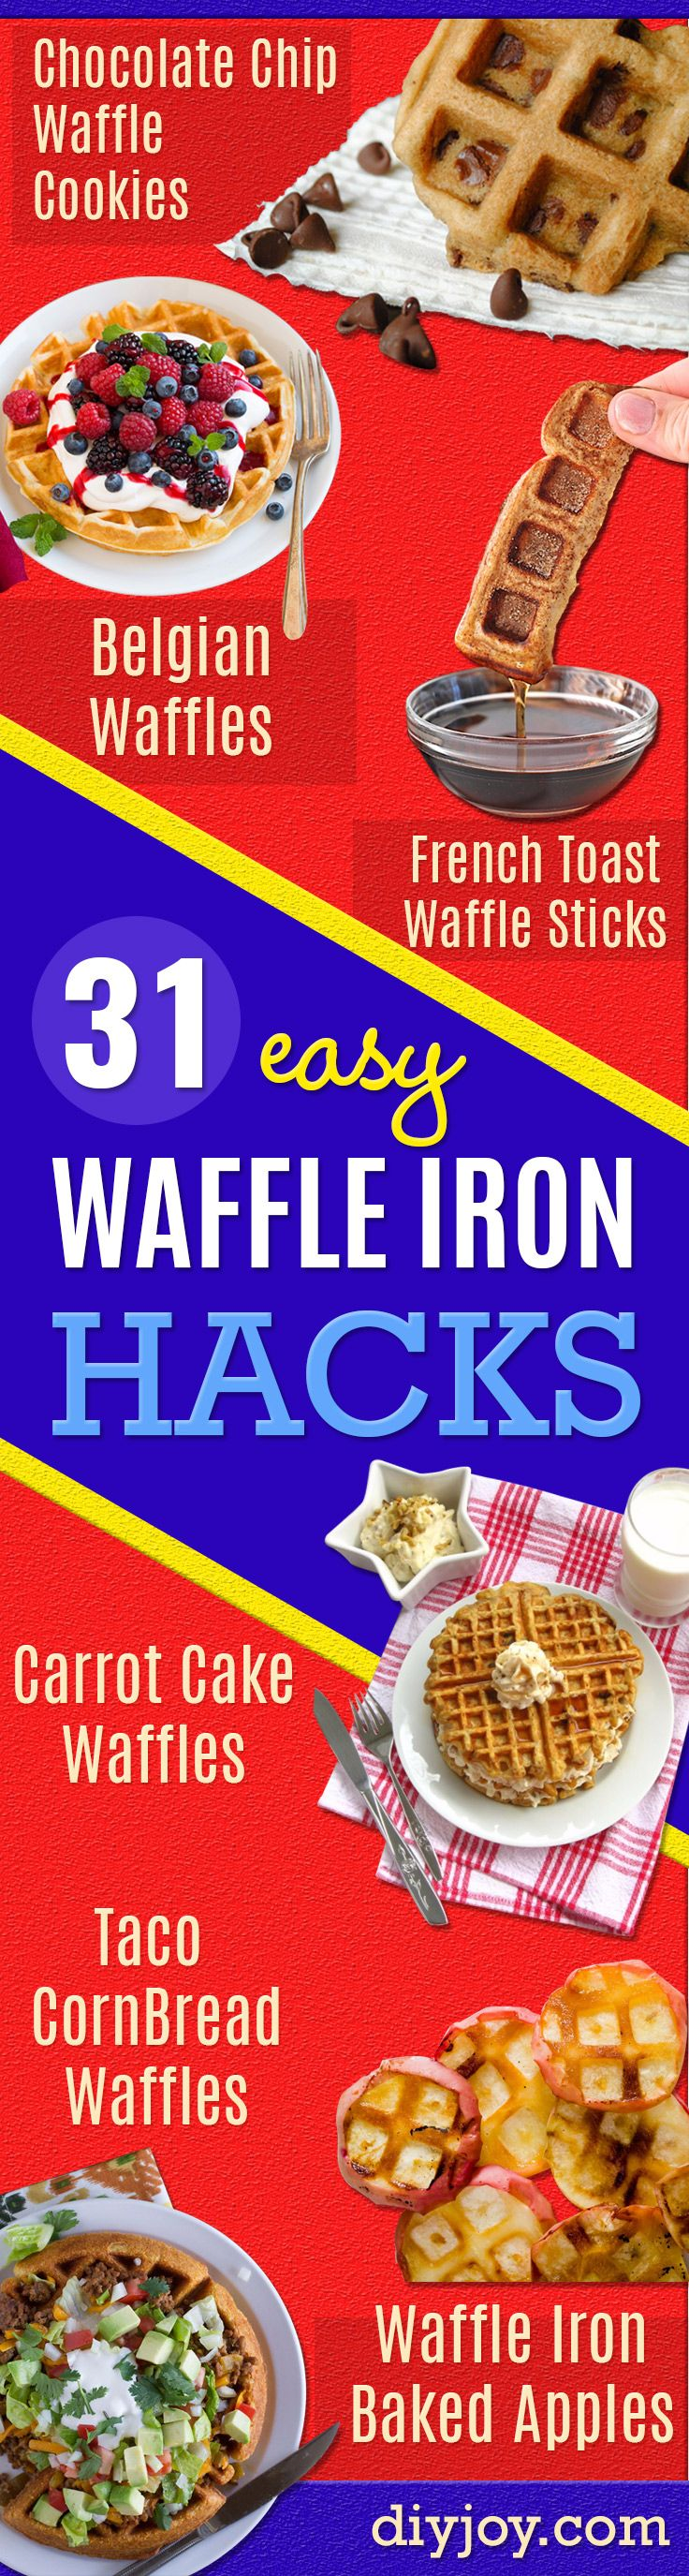 Waffle Iron Hacks and Easy Recipes for Waffle Irons - Quick Ways to Make Healthy Meals in a Waffle Maker - Breakfast, Dinner, Lunch, Dessert and Snack Ideas - Homemade Pizza, Cinnamon Rolls, Egg, Low Carb, Sandwich, Bisquick, Savory Recipes and Biscuits http://diyjoy.com/waffle-iron-hacks-recipes